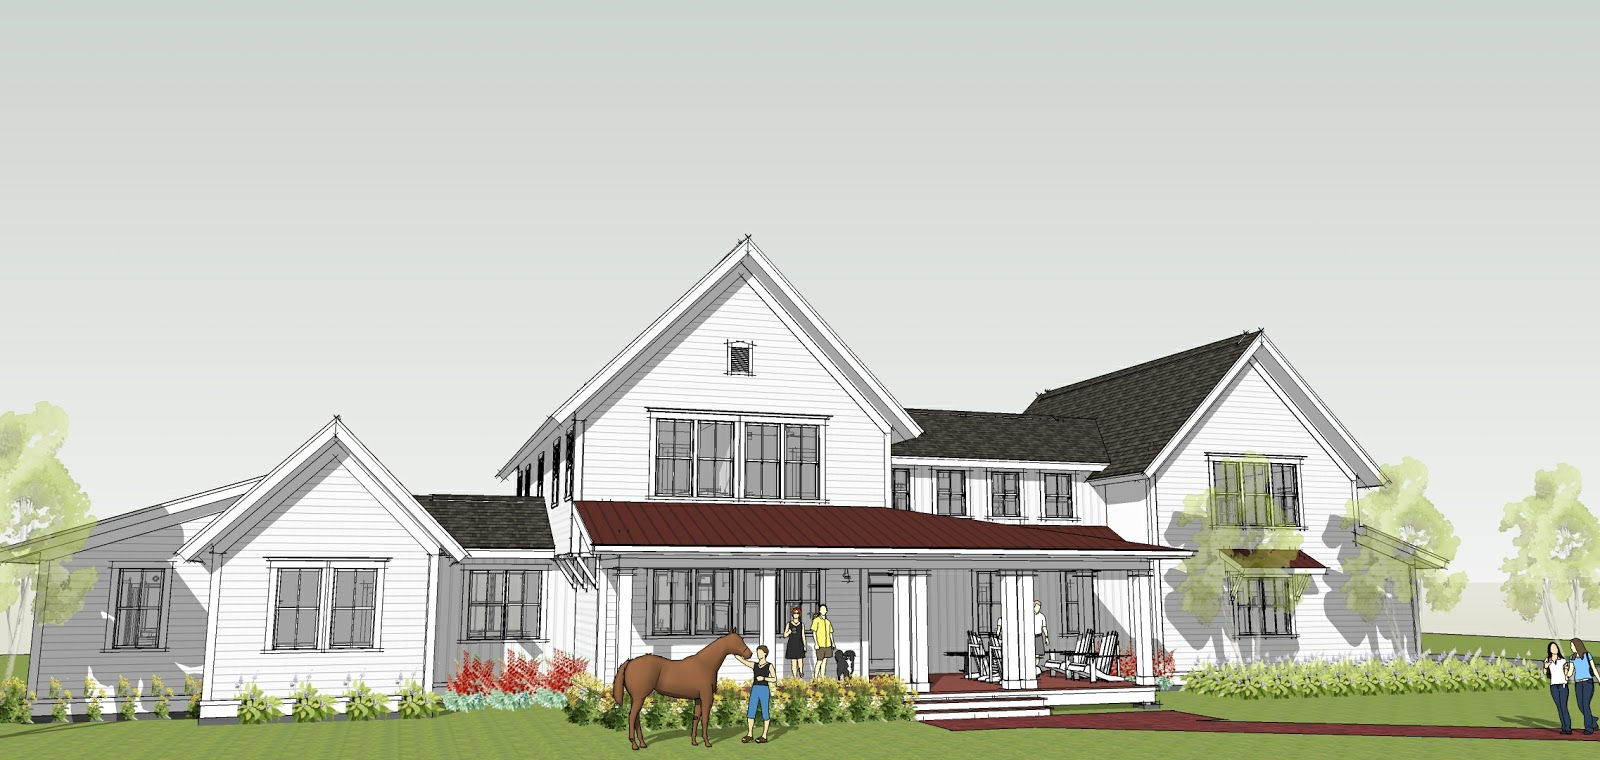 Simply elegant home designs blog modern farmhouse by ron for Elegant house plans photos